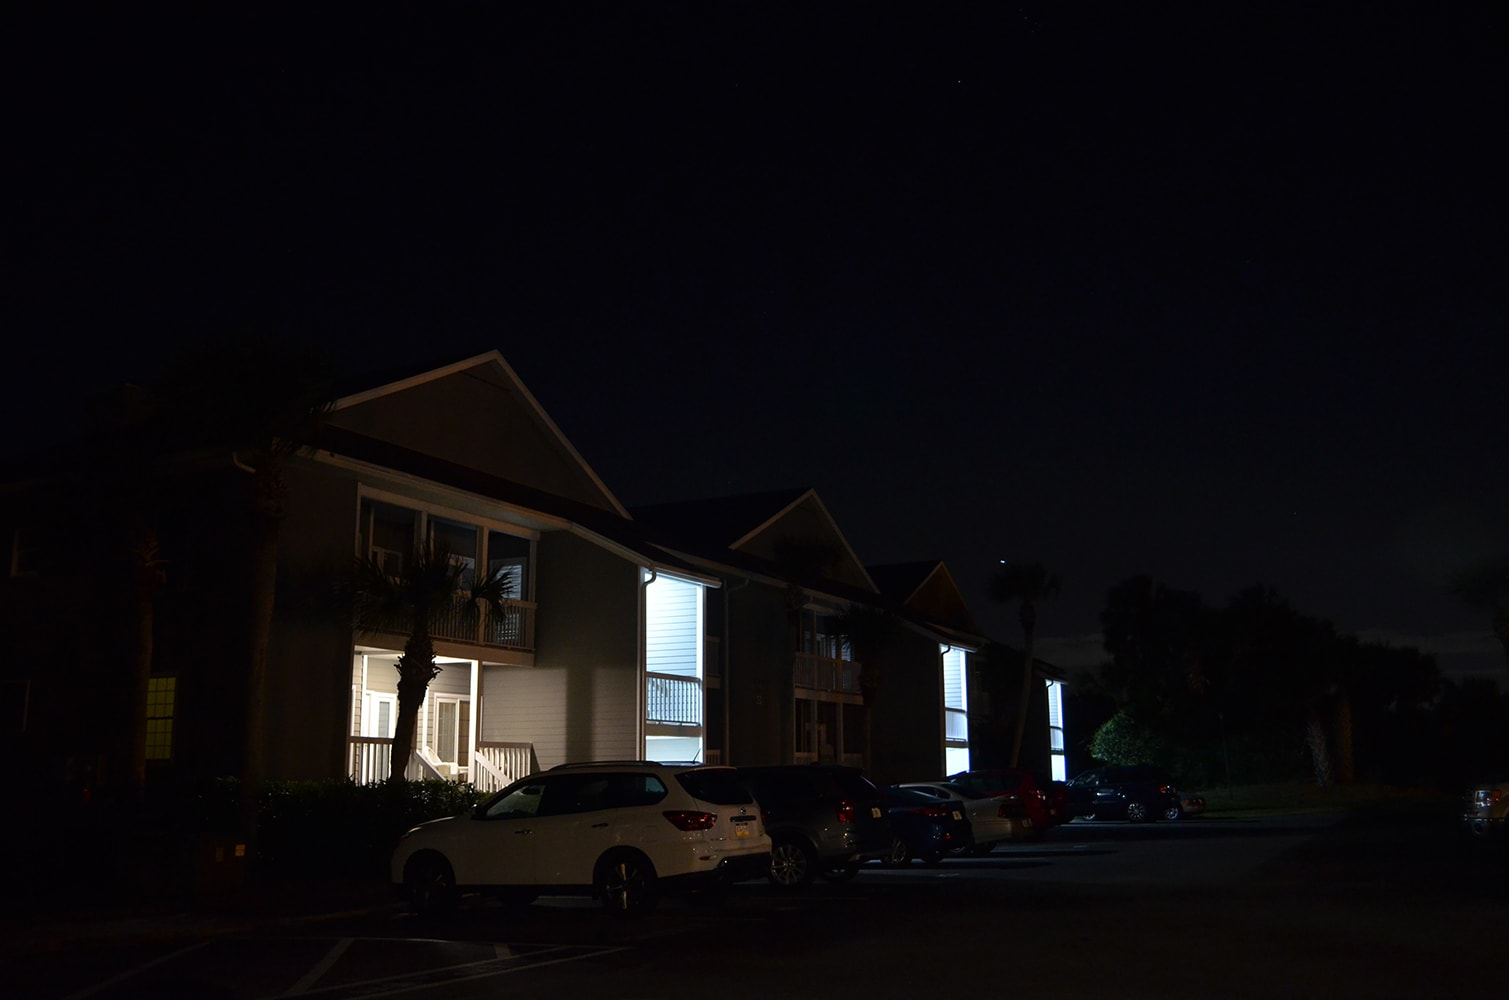 Apartment complex without exterior lights